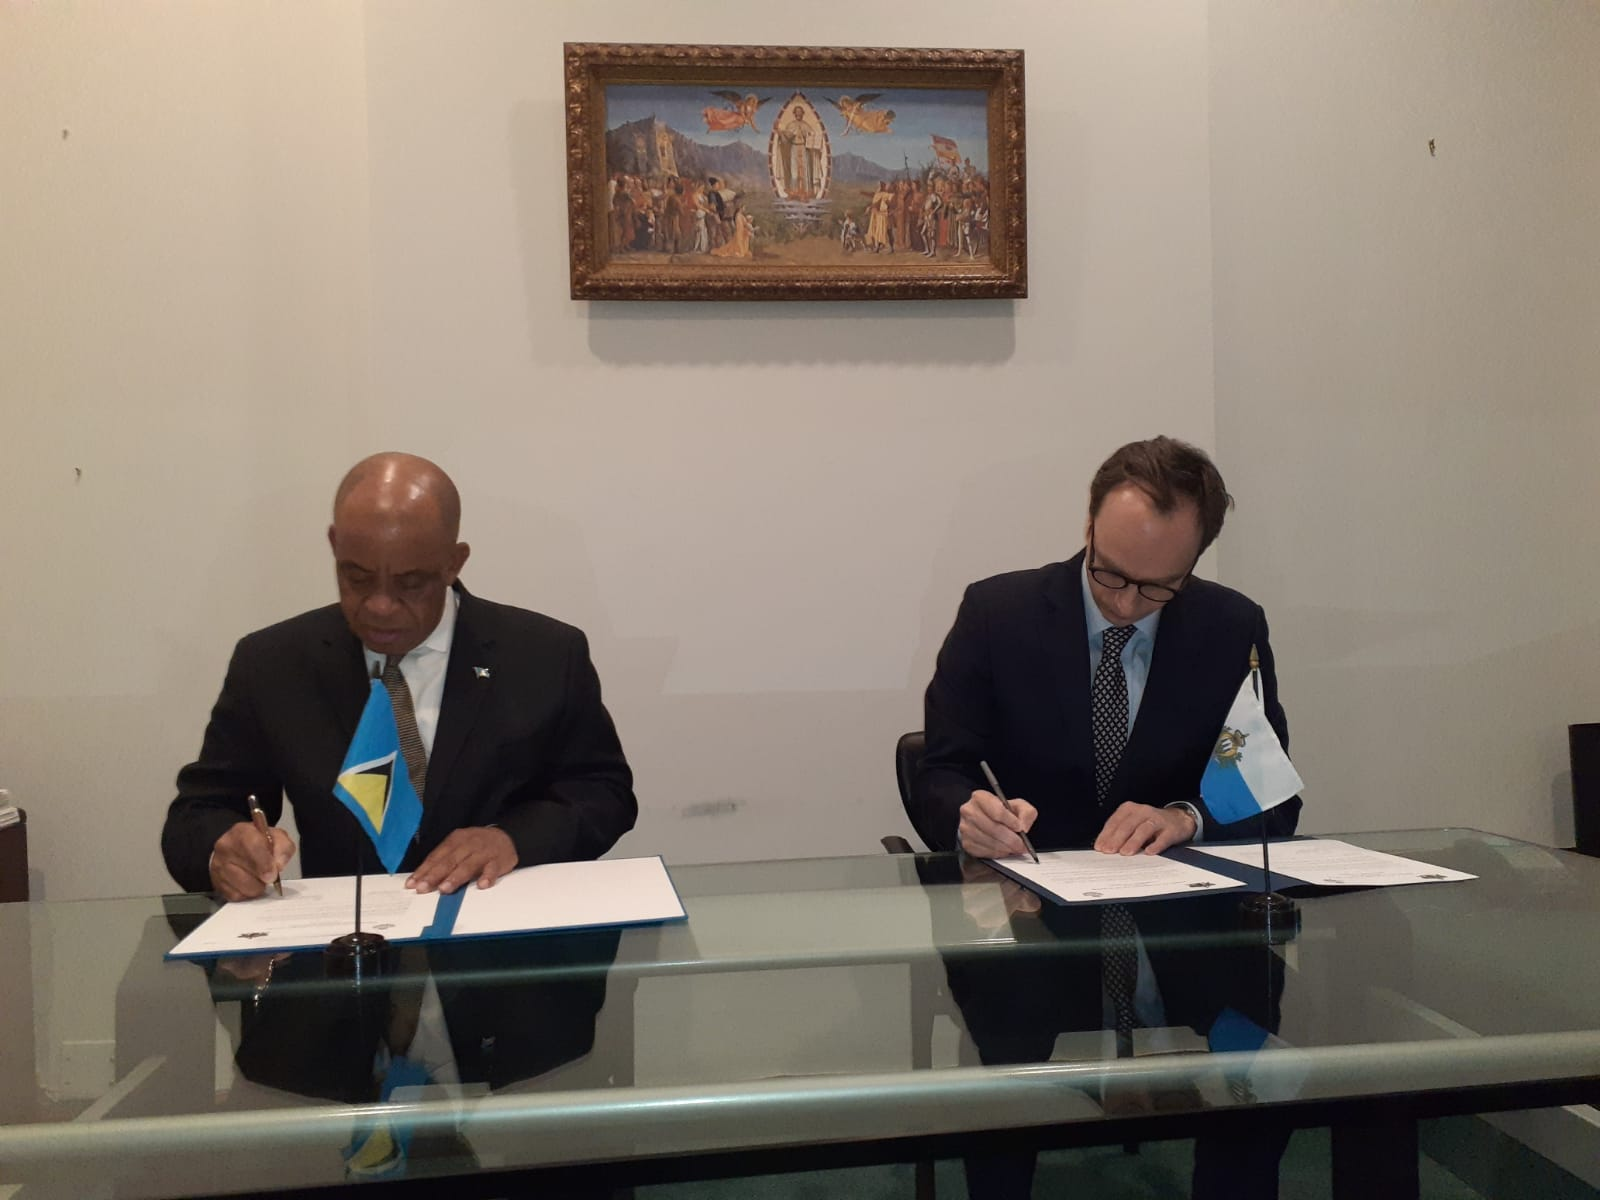 Feb. 7, 2020-Saint Lucia signs Agreement with the Republic of San Marino